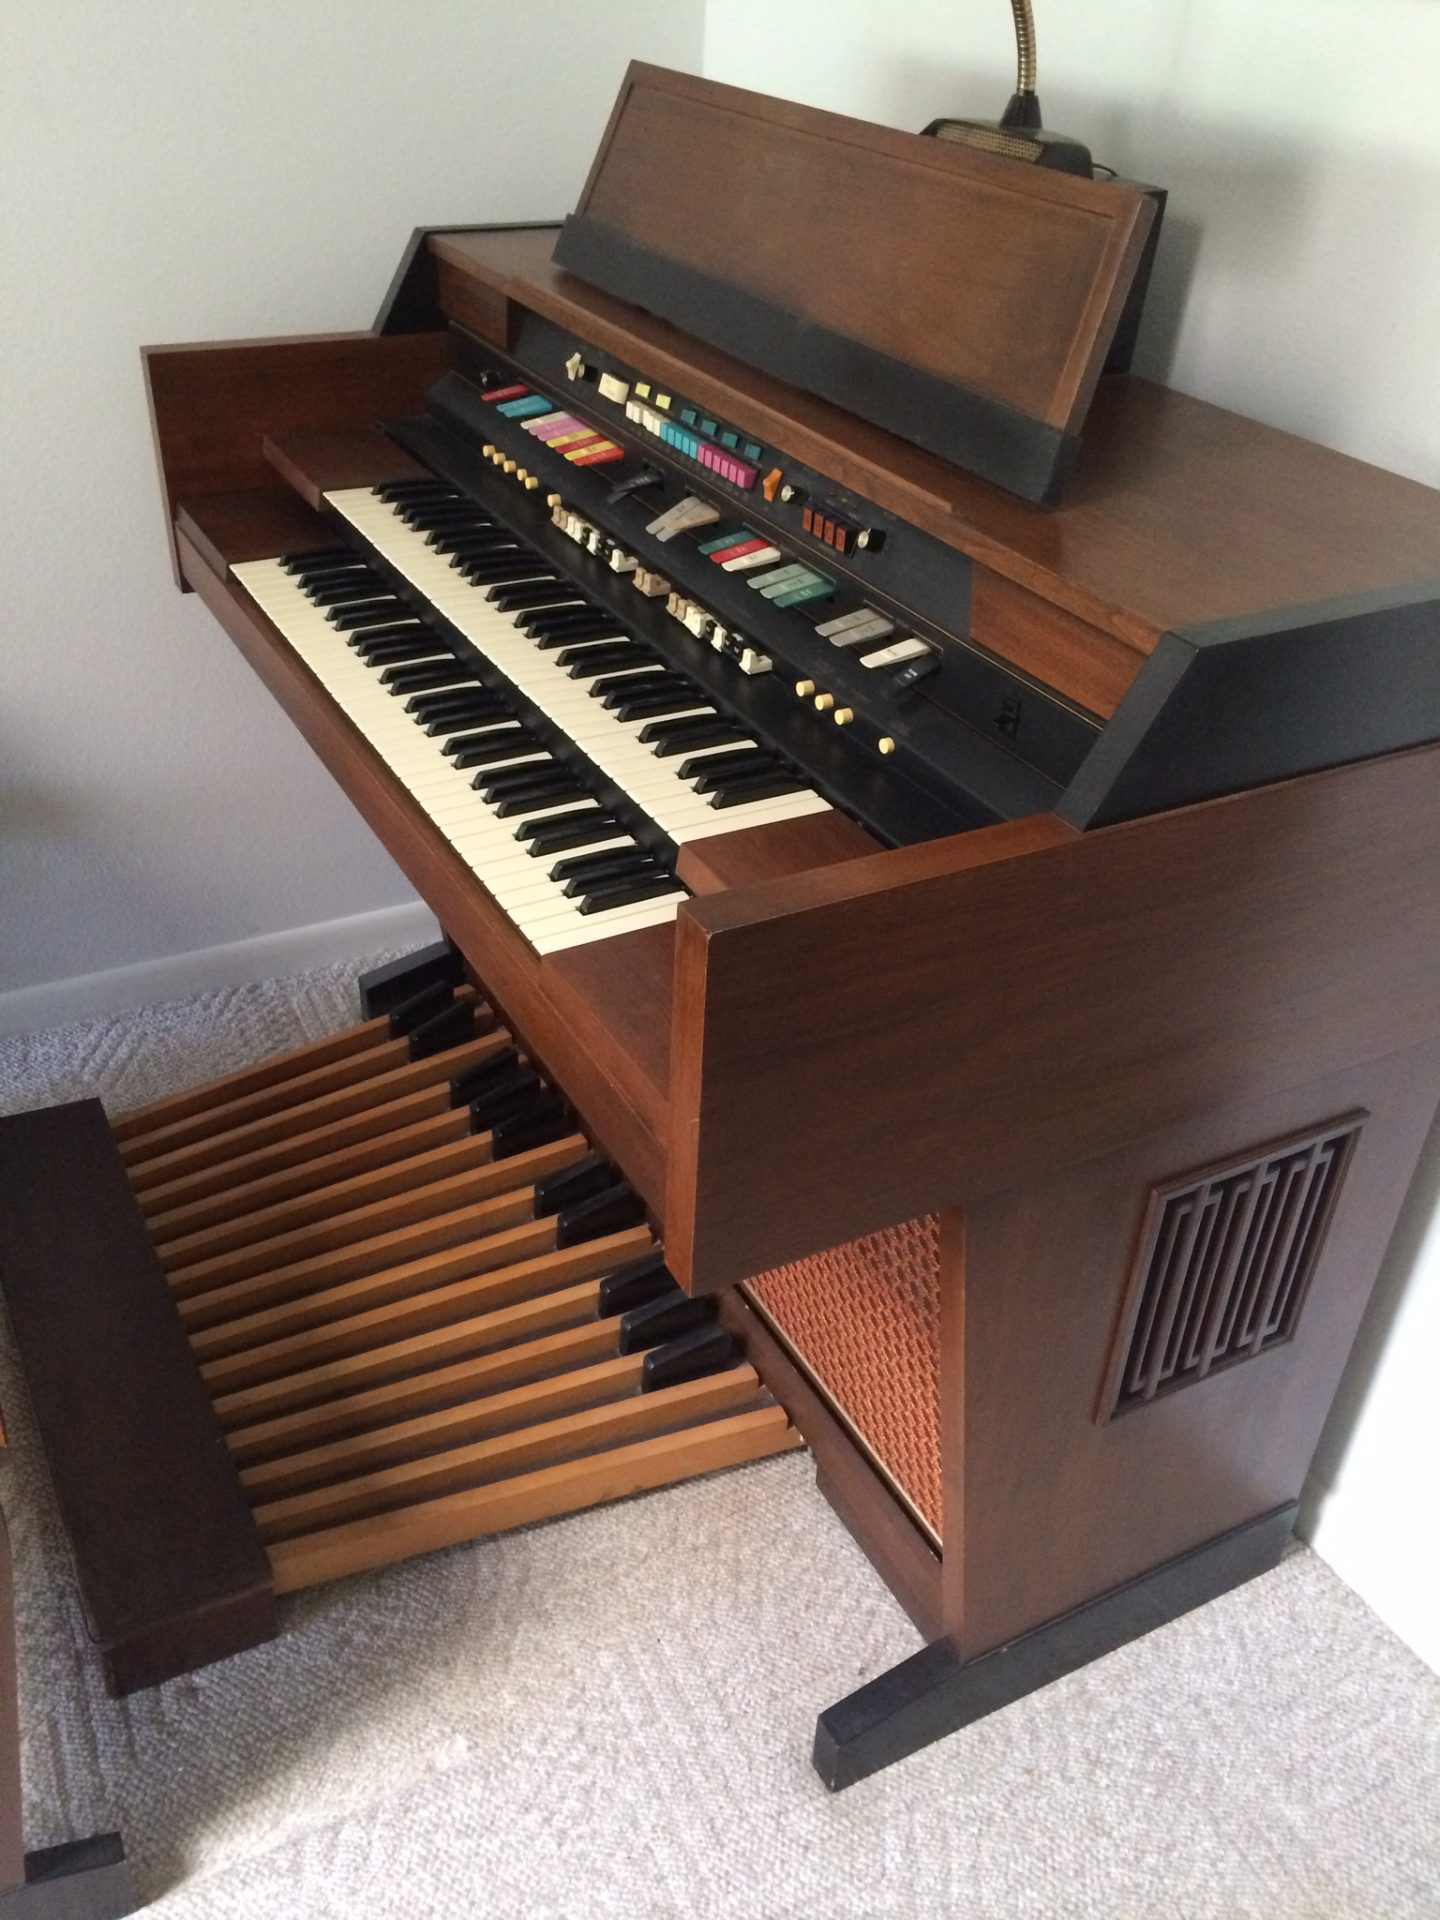 Groovy Hammond organ in Lake Placid. He loved playing the organ!